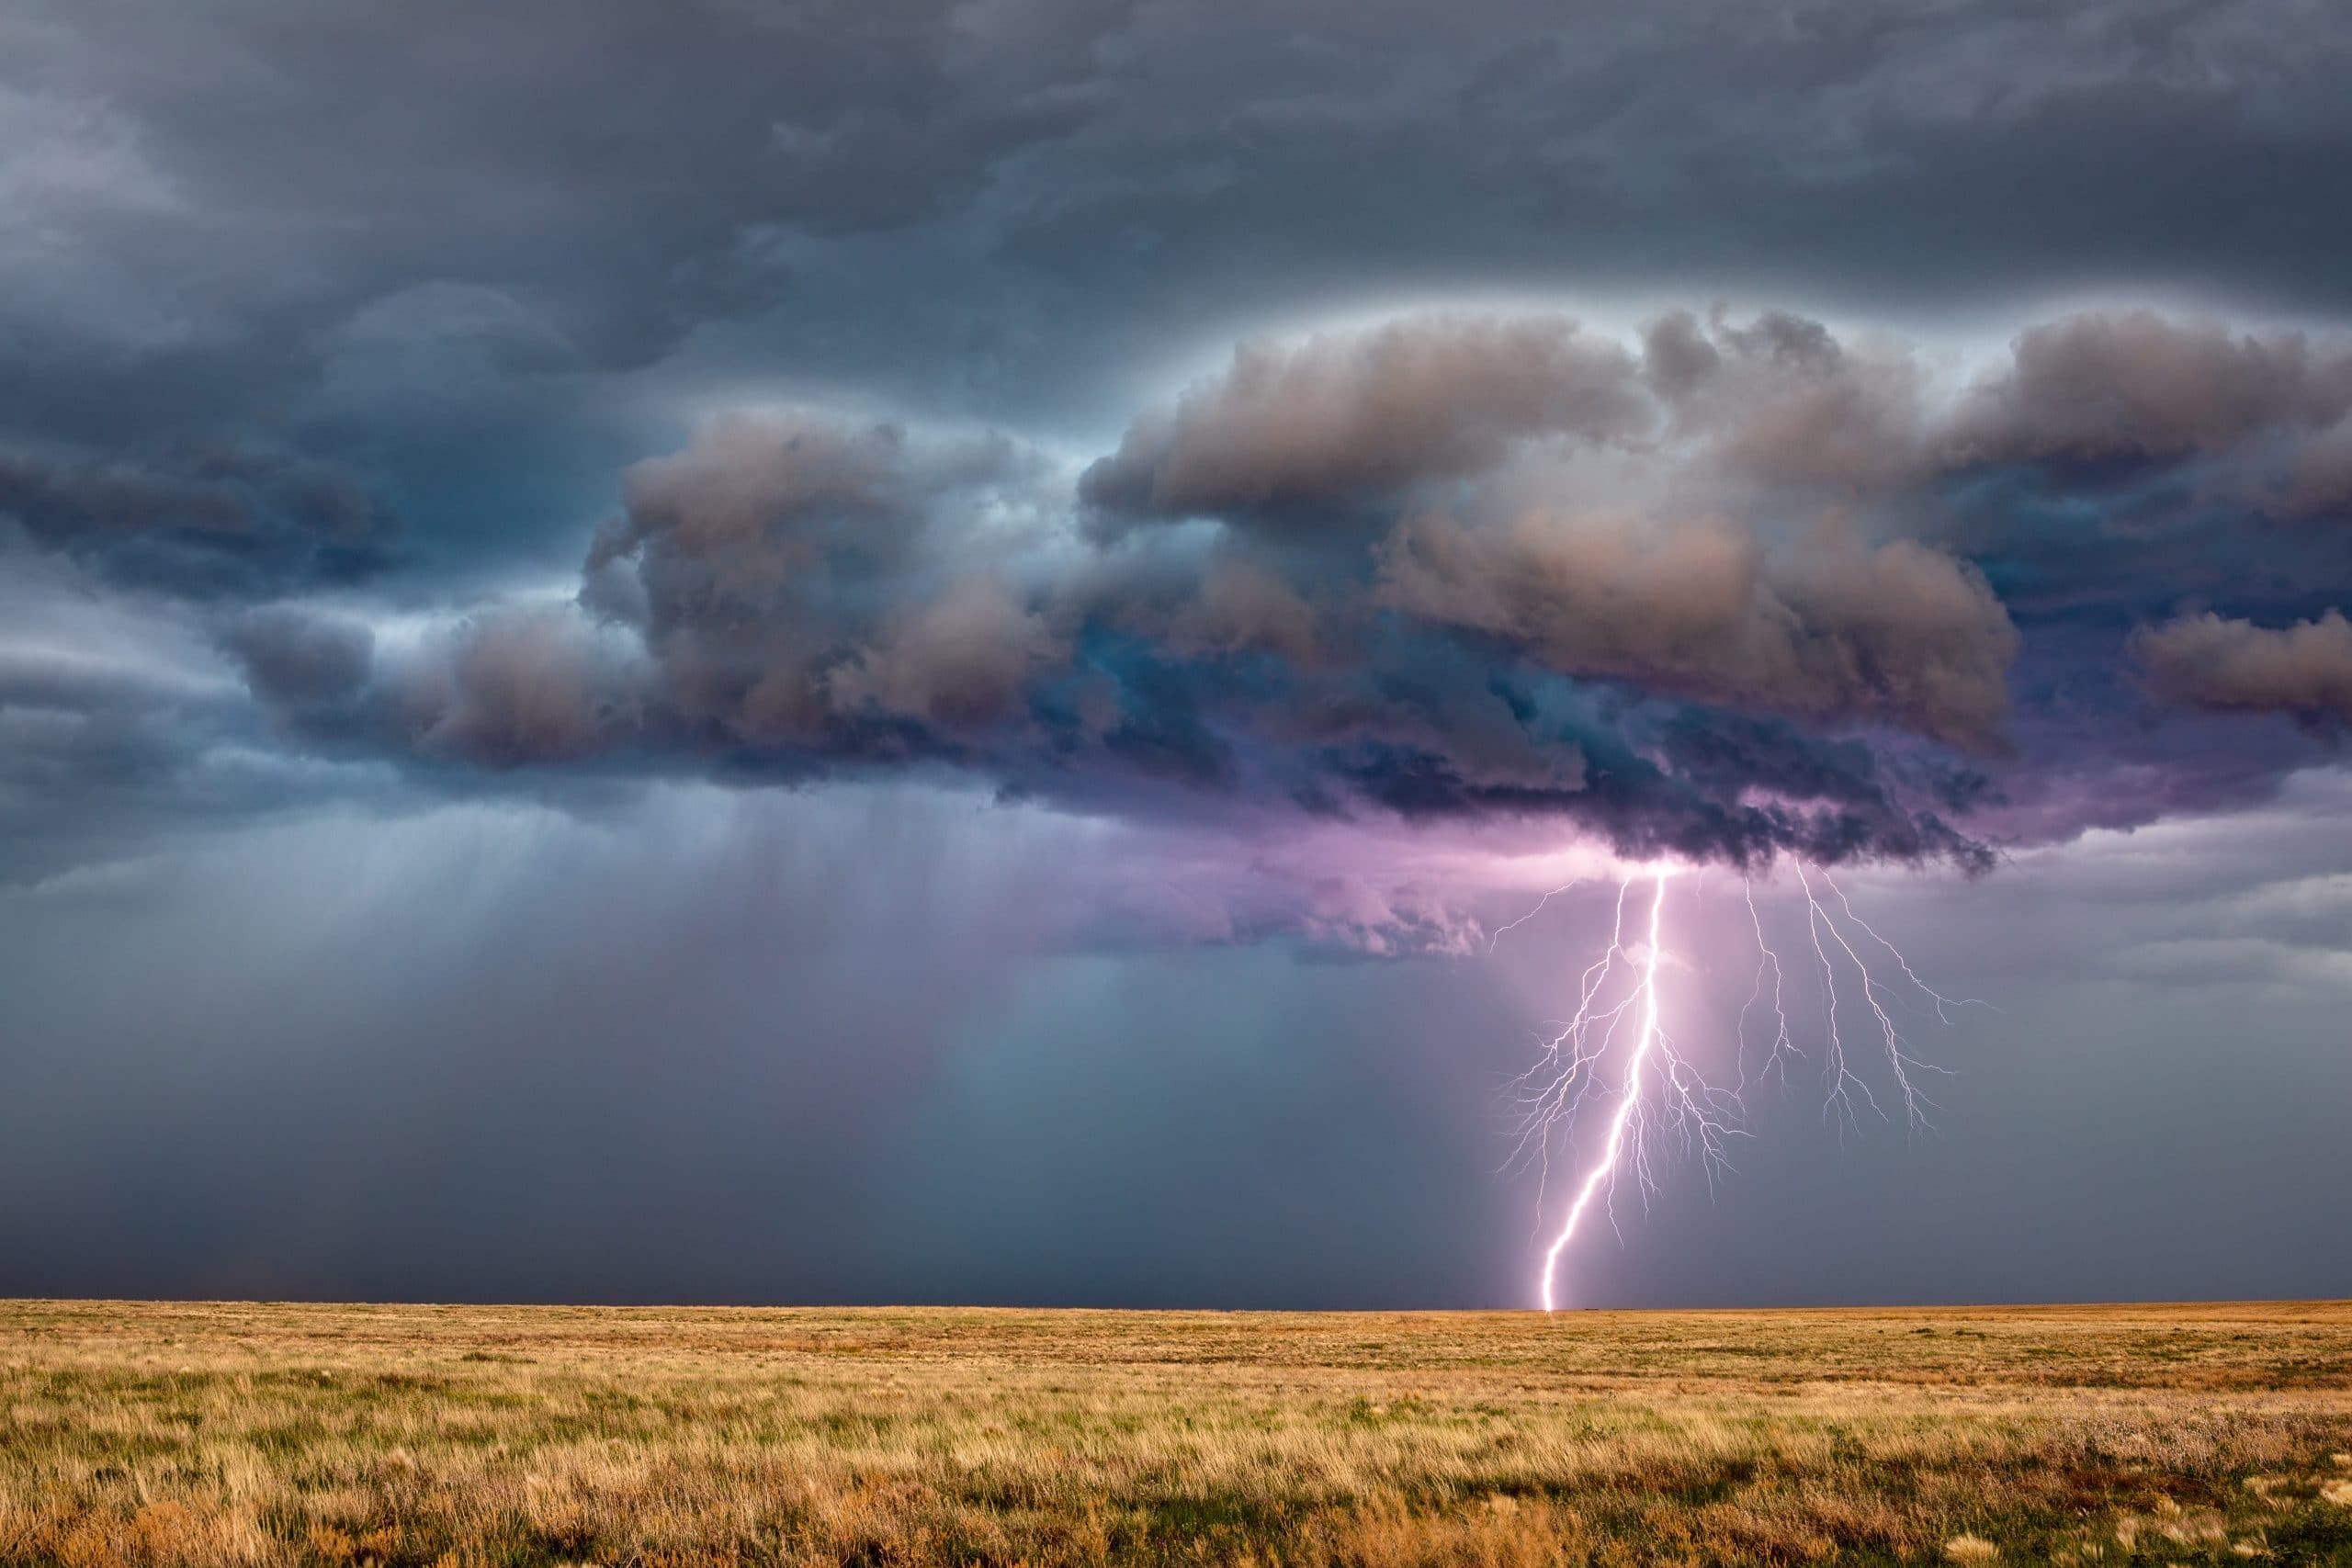 large lightning bolt striking open field